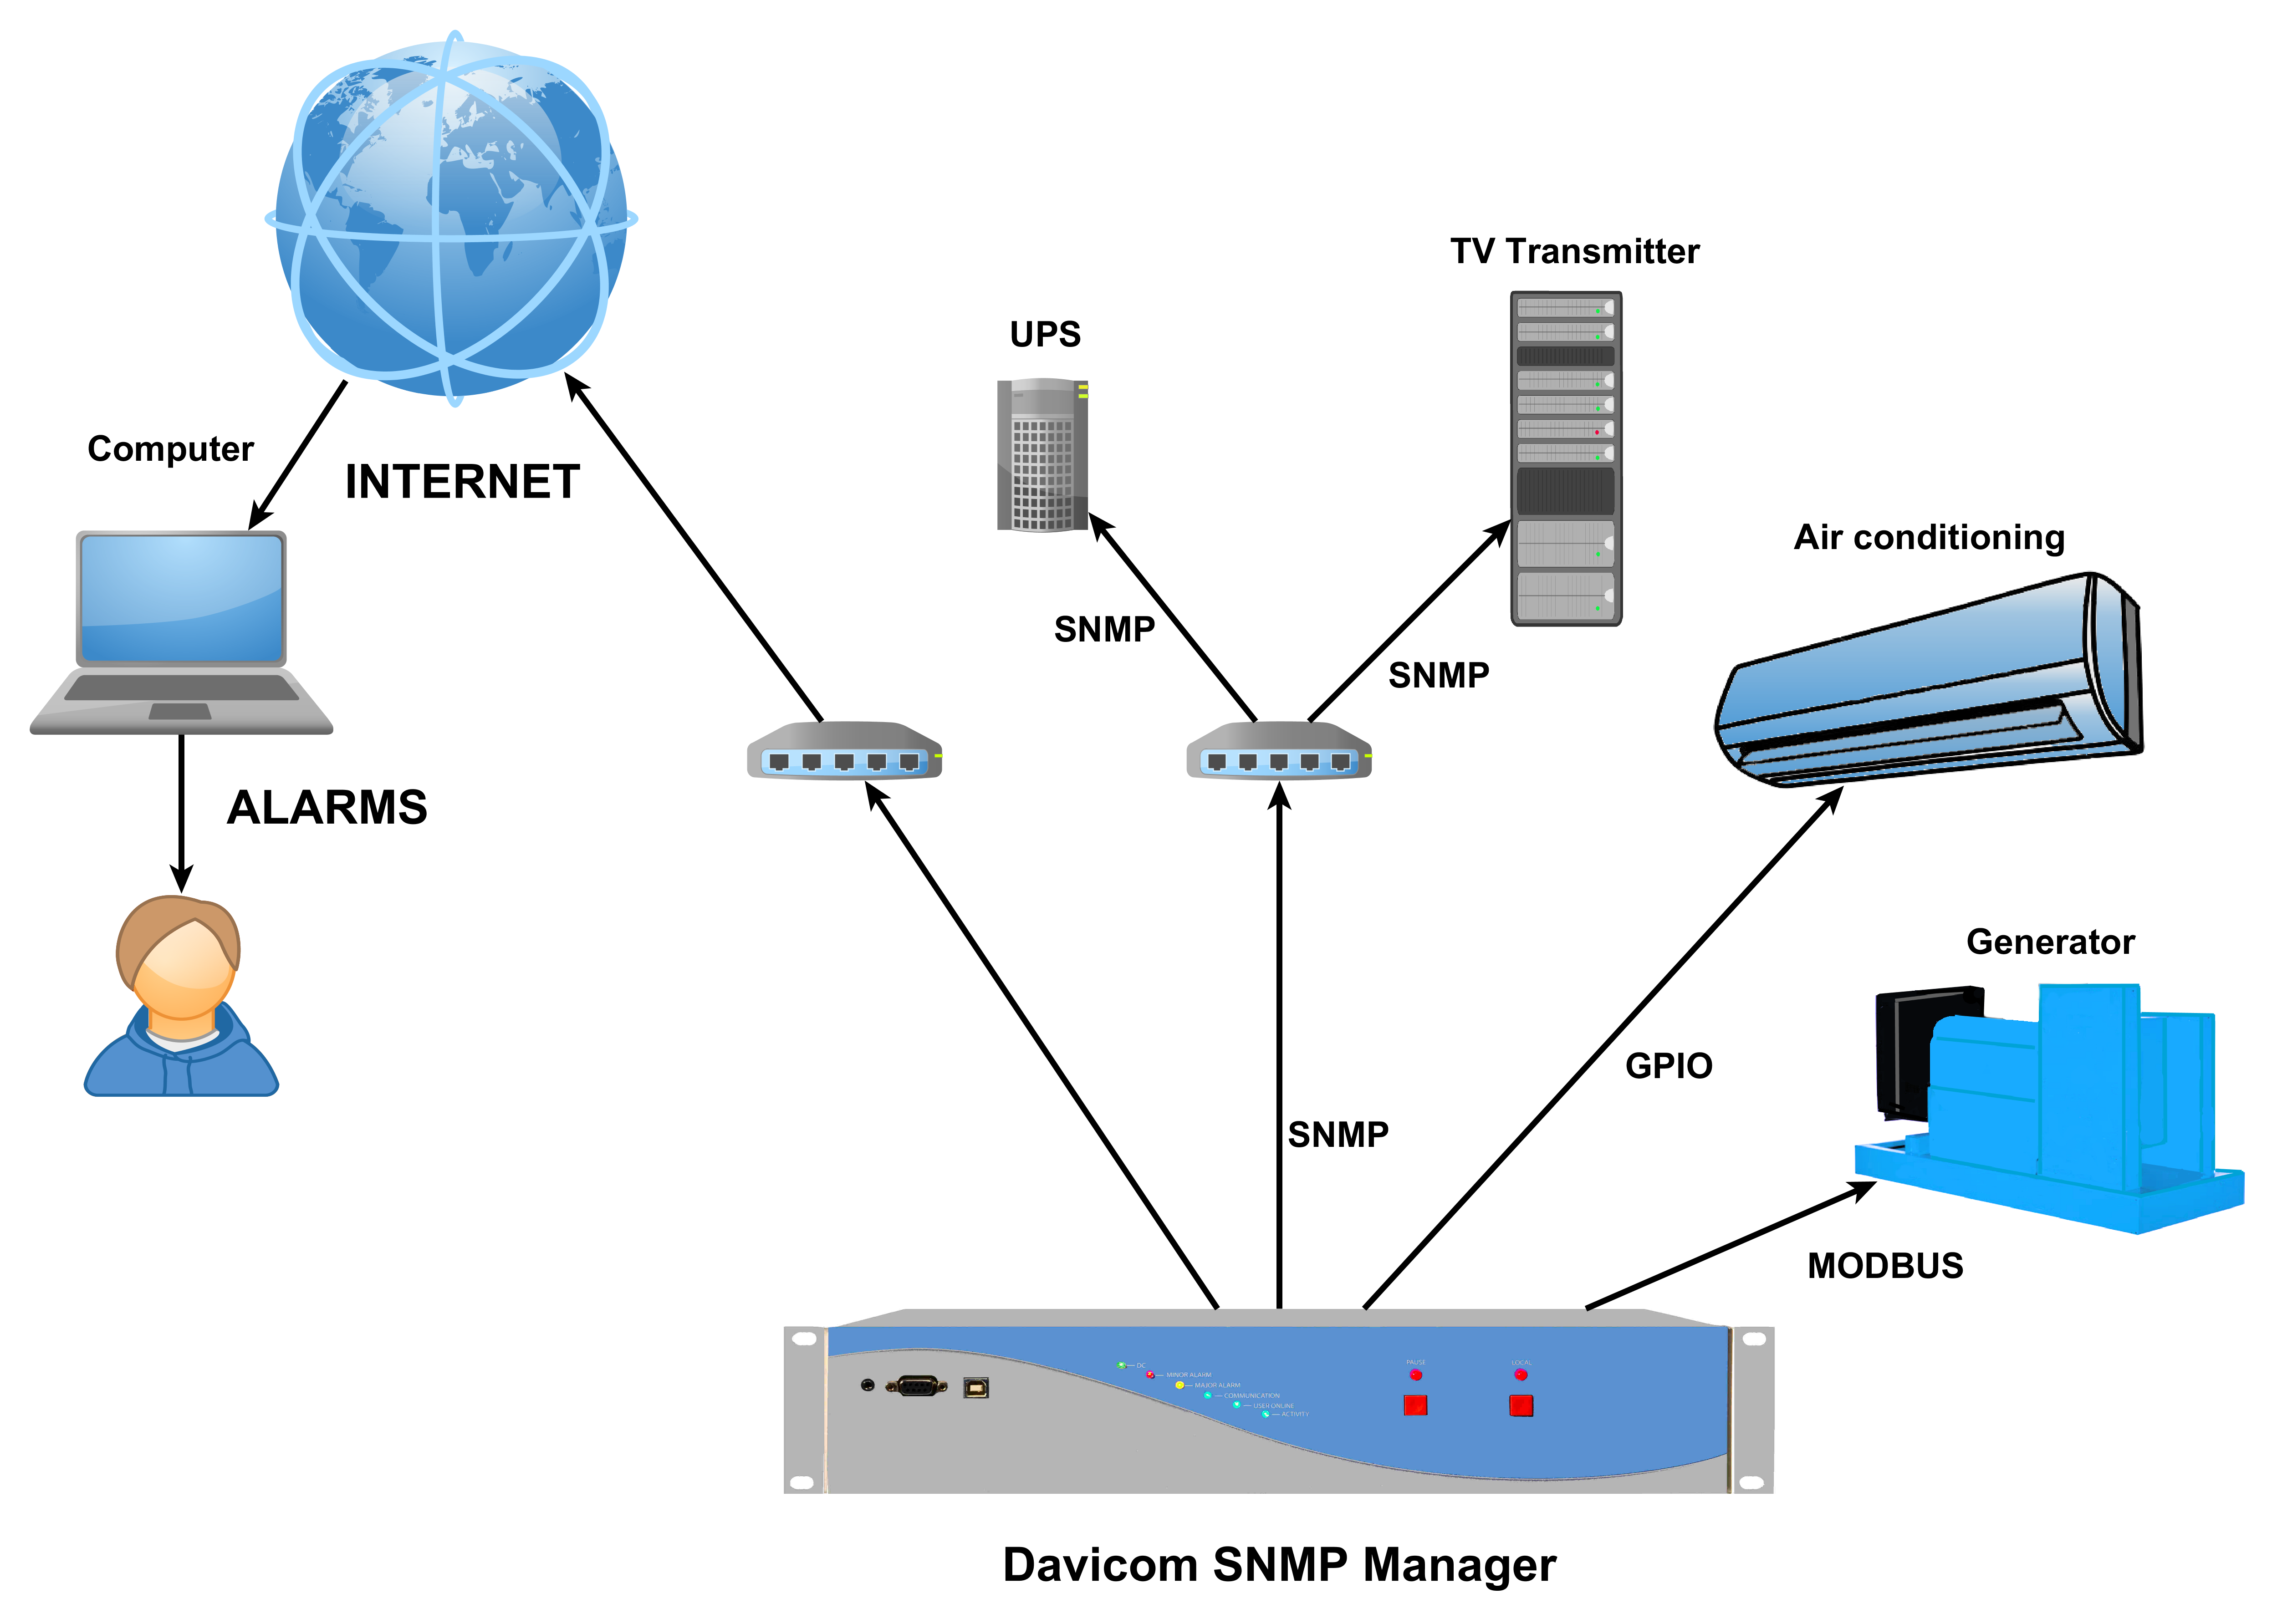 SNMP for broadcast